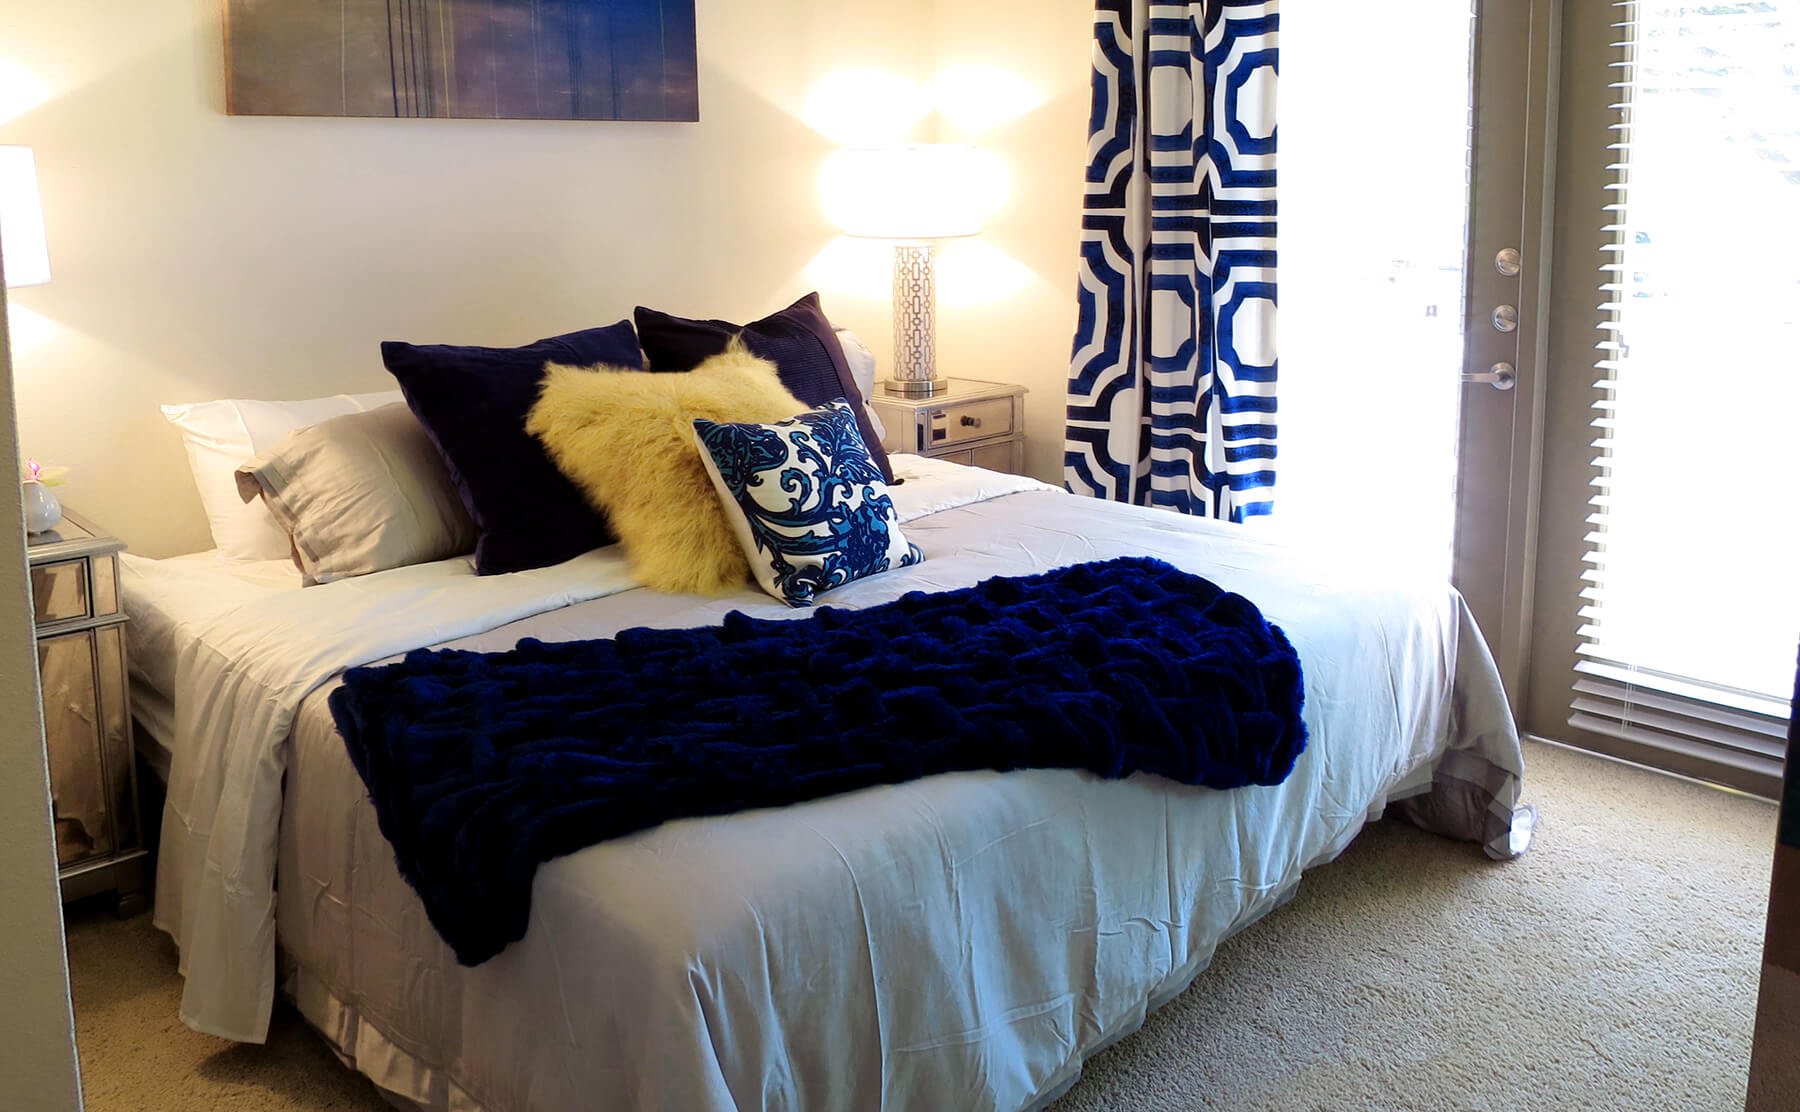 Lakewood Dallas Apartment Living - Bedrooms that fit king size beds